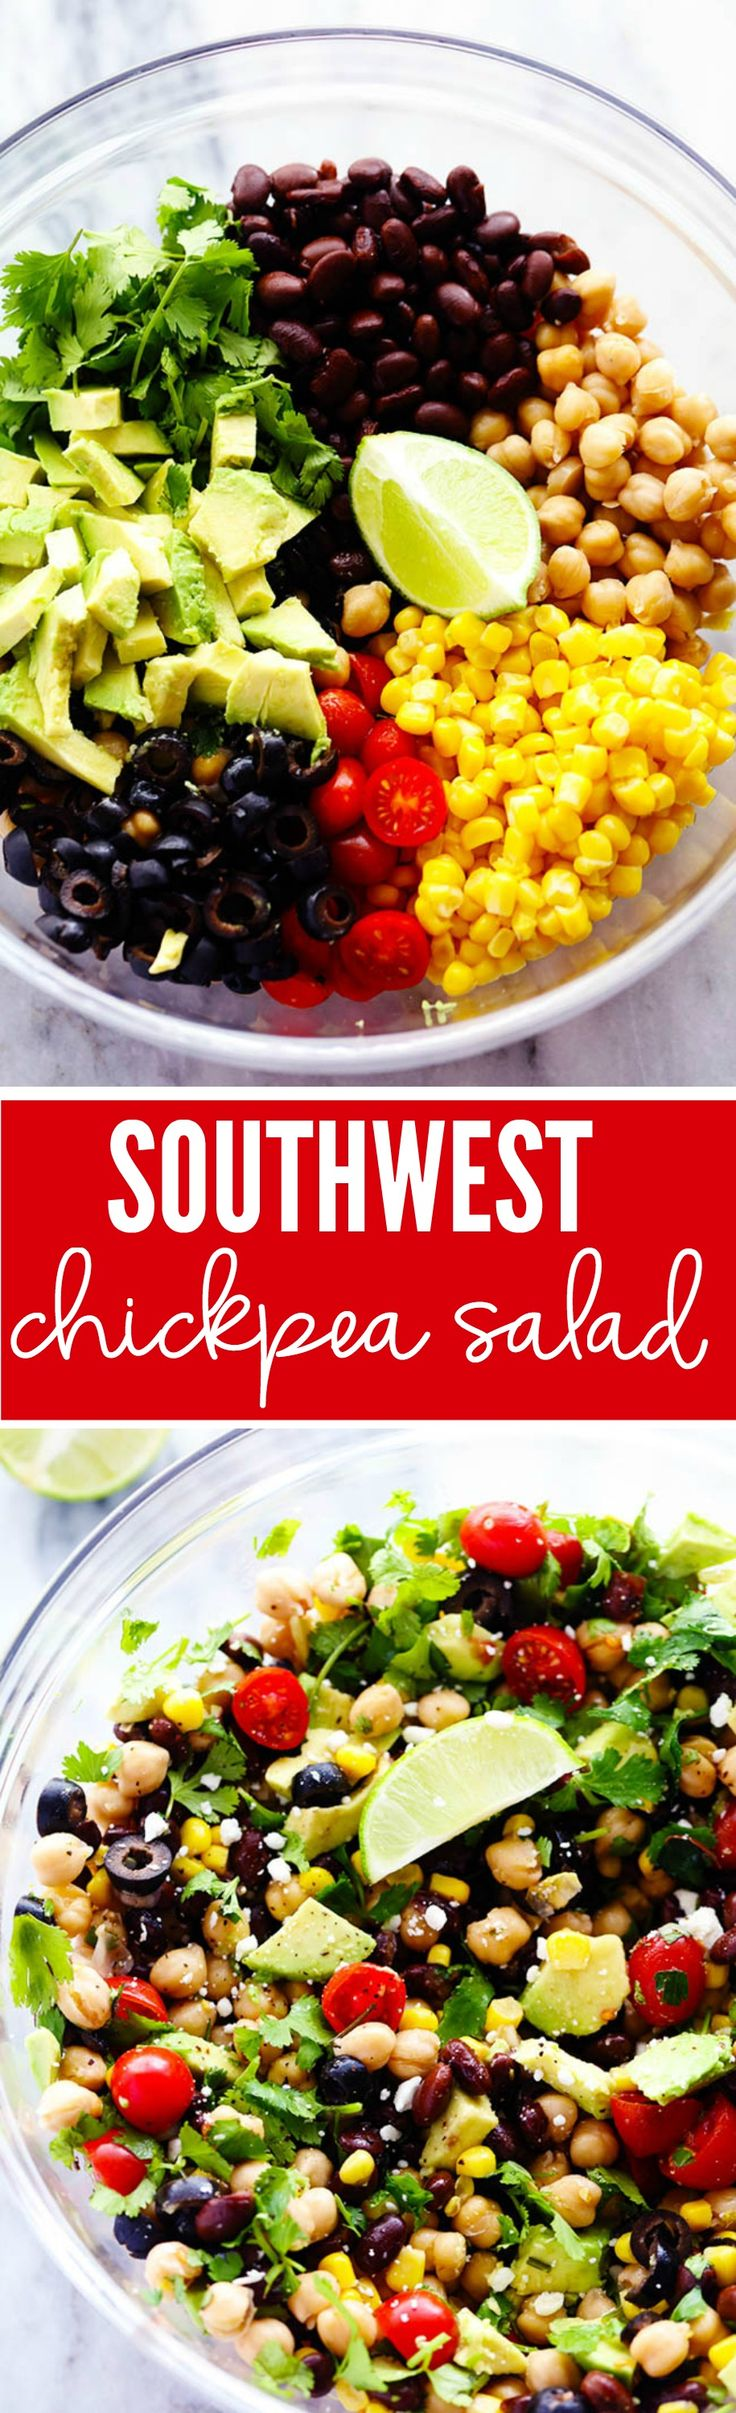 Southwest Chickpea Salad - A delicious and fresh chick pea salad filled so many delicious flavors and textures! This salad is fresh and healthy and easy to make!